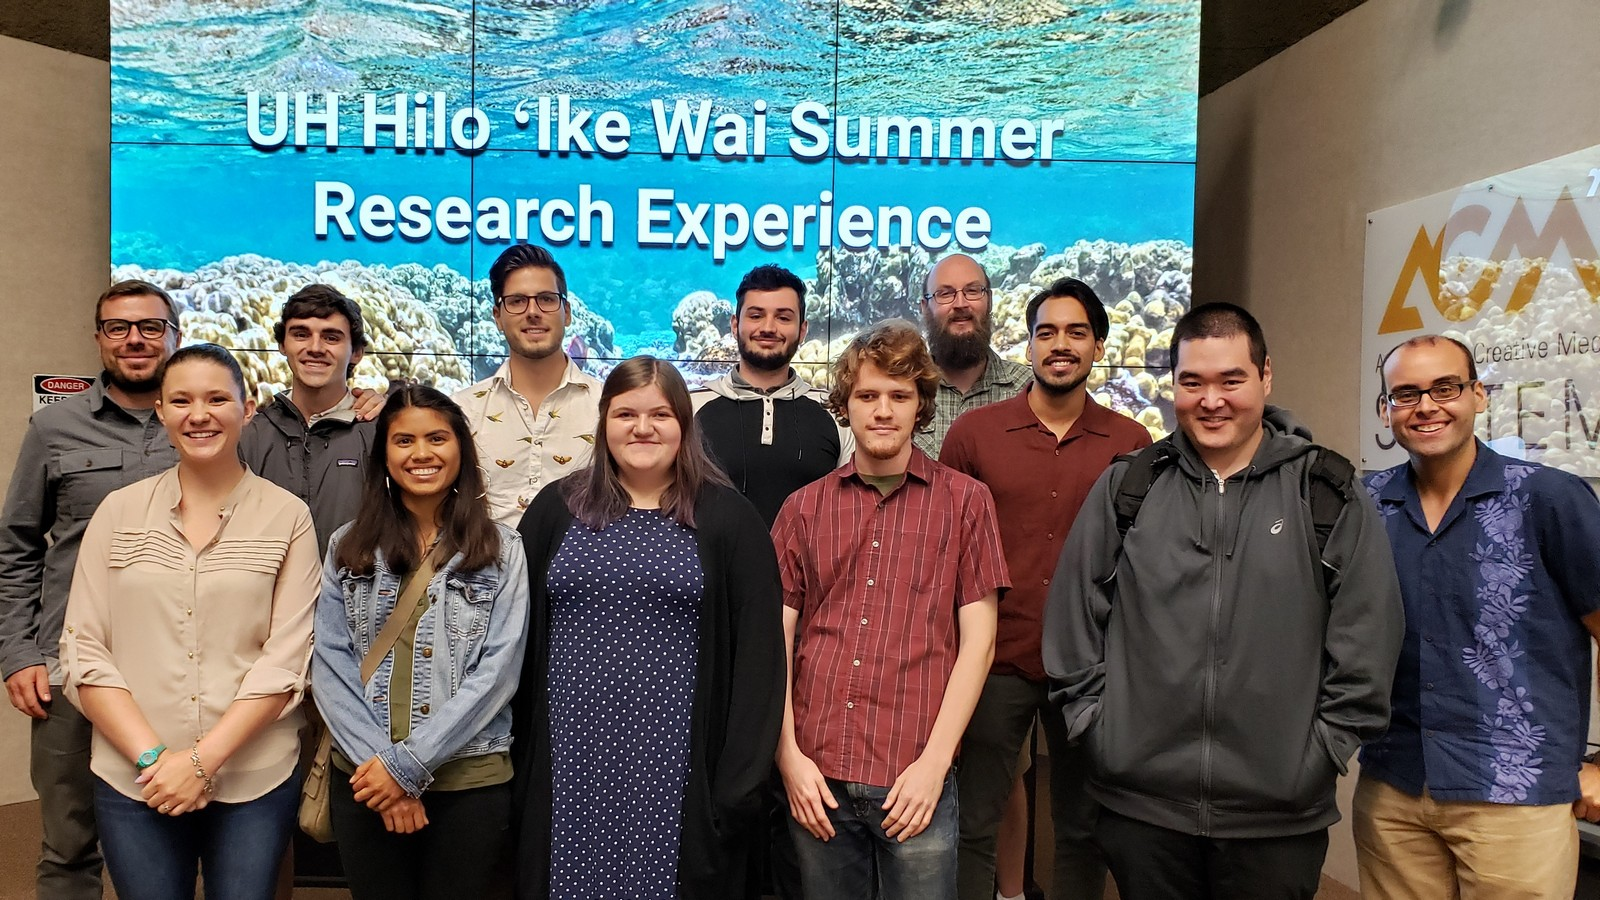 Group photo of class in front of PowerPoint slide with image of underwater coral reef and the words: UH Hilo 'Ike Wai Summer Research Experience.